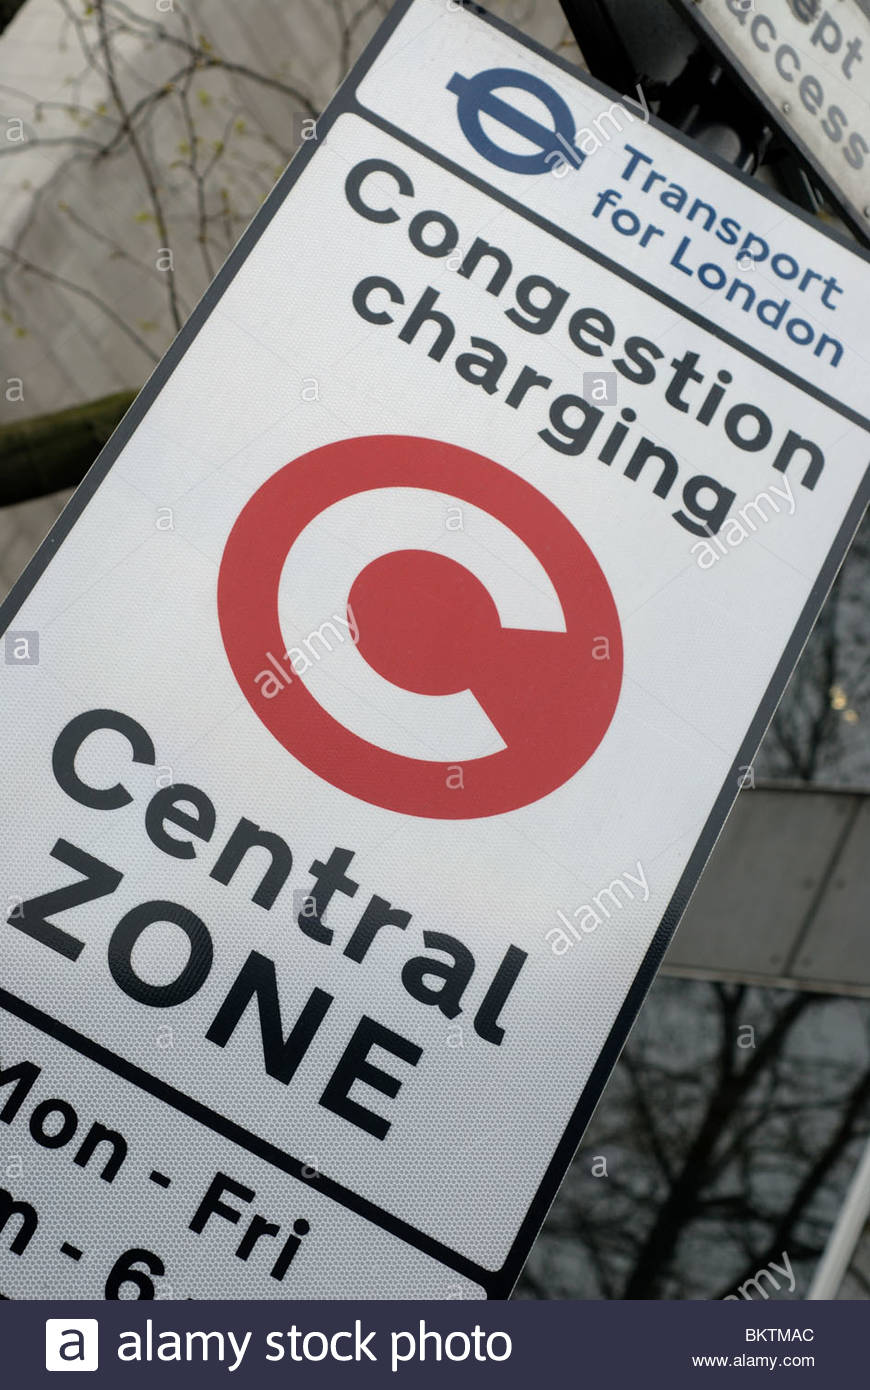 London UK Congestion charge sign, and area where congestion pricing is made during peak periods. - Stock Image